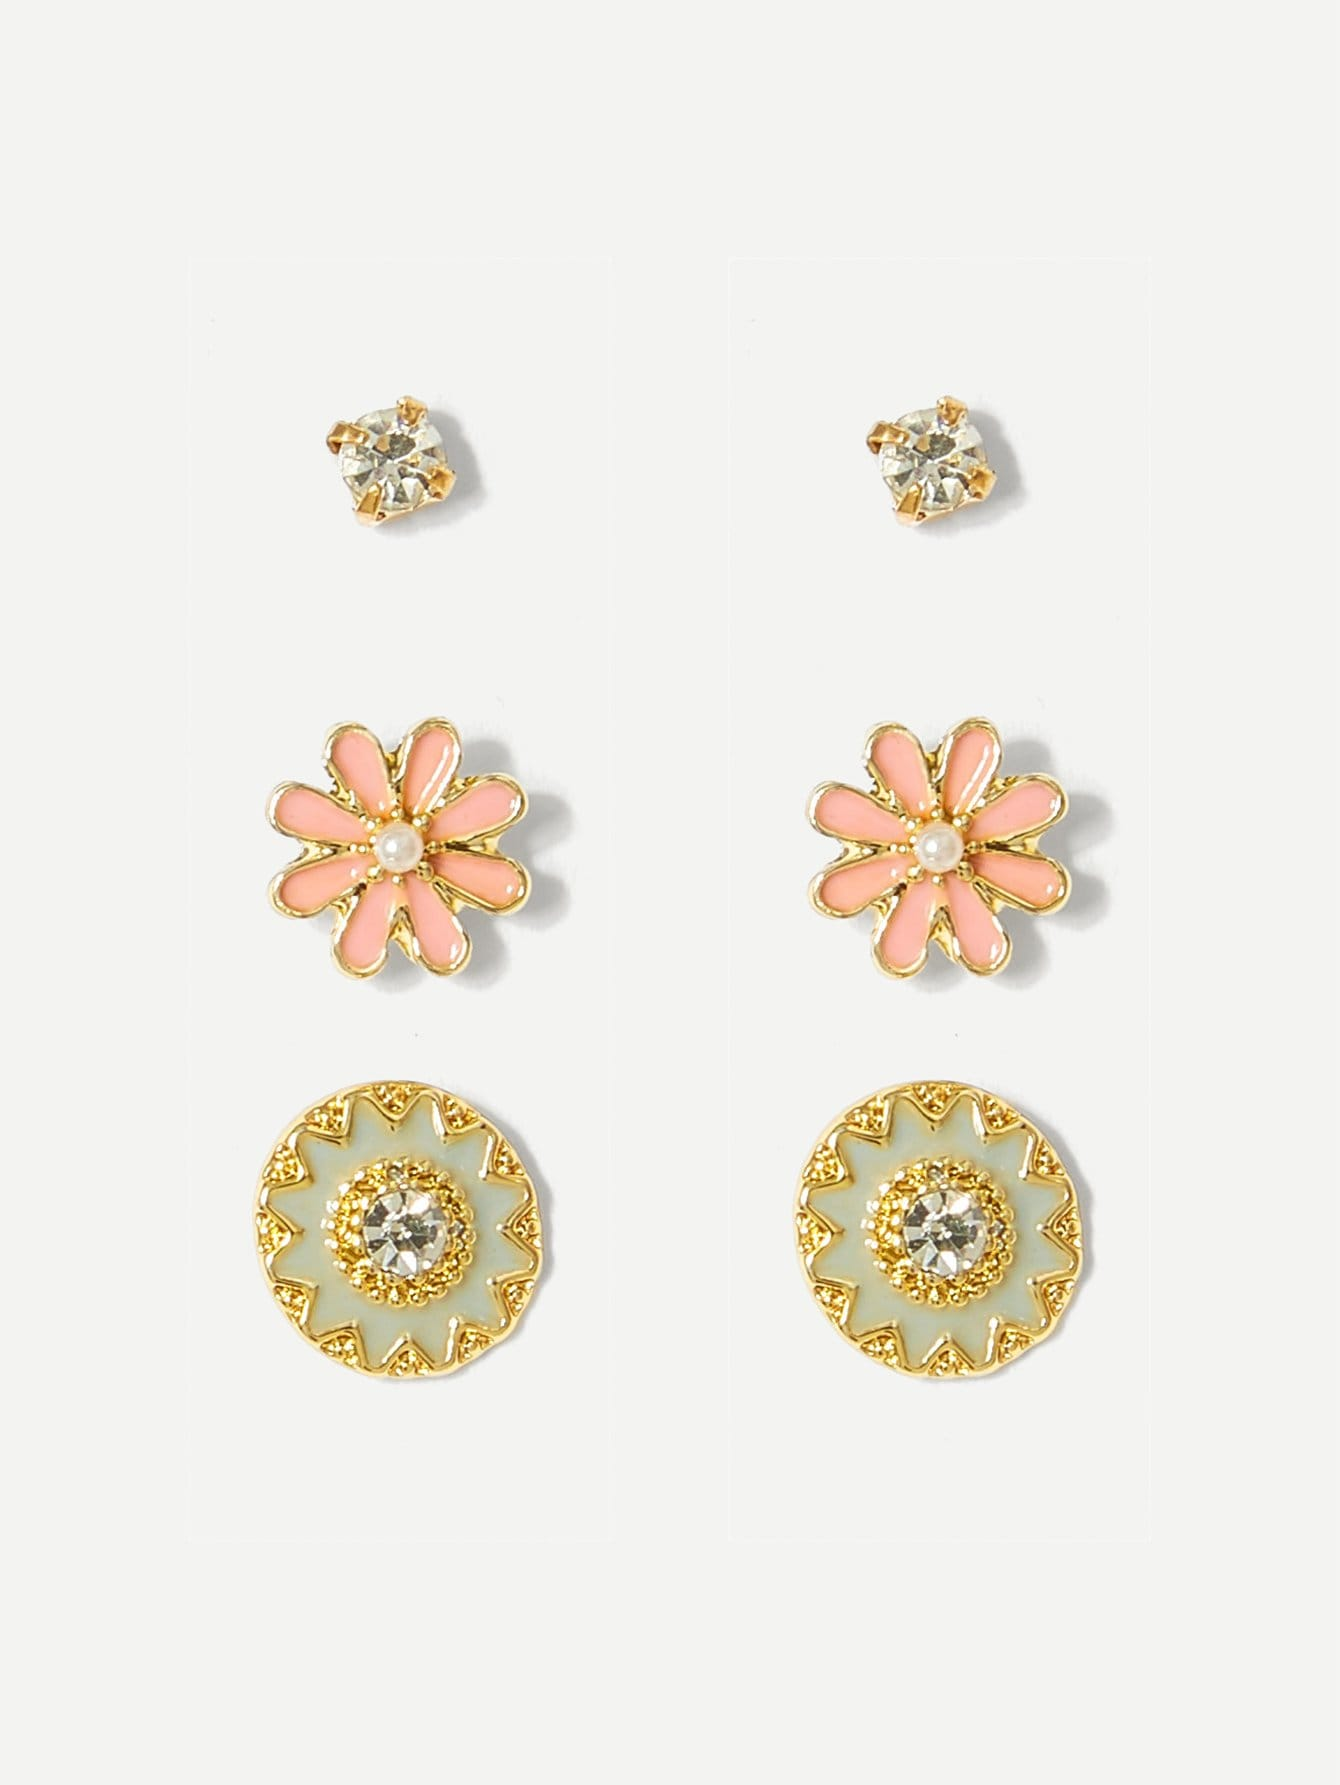 3 Pairs Pink And Golden Gemstone Flower Shaped Stud Earrings